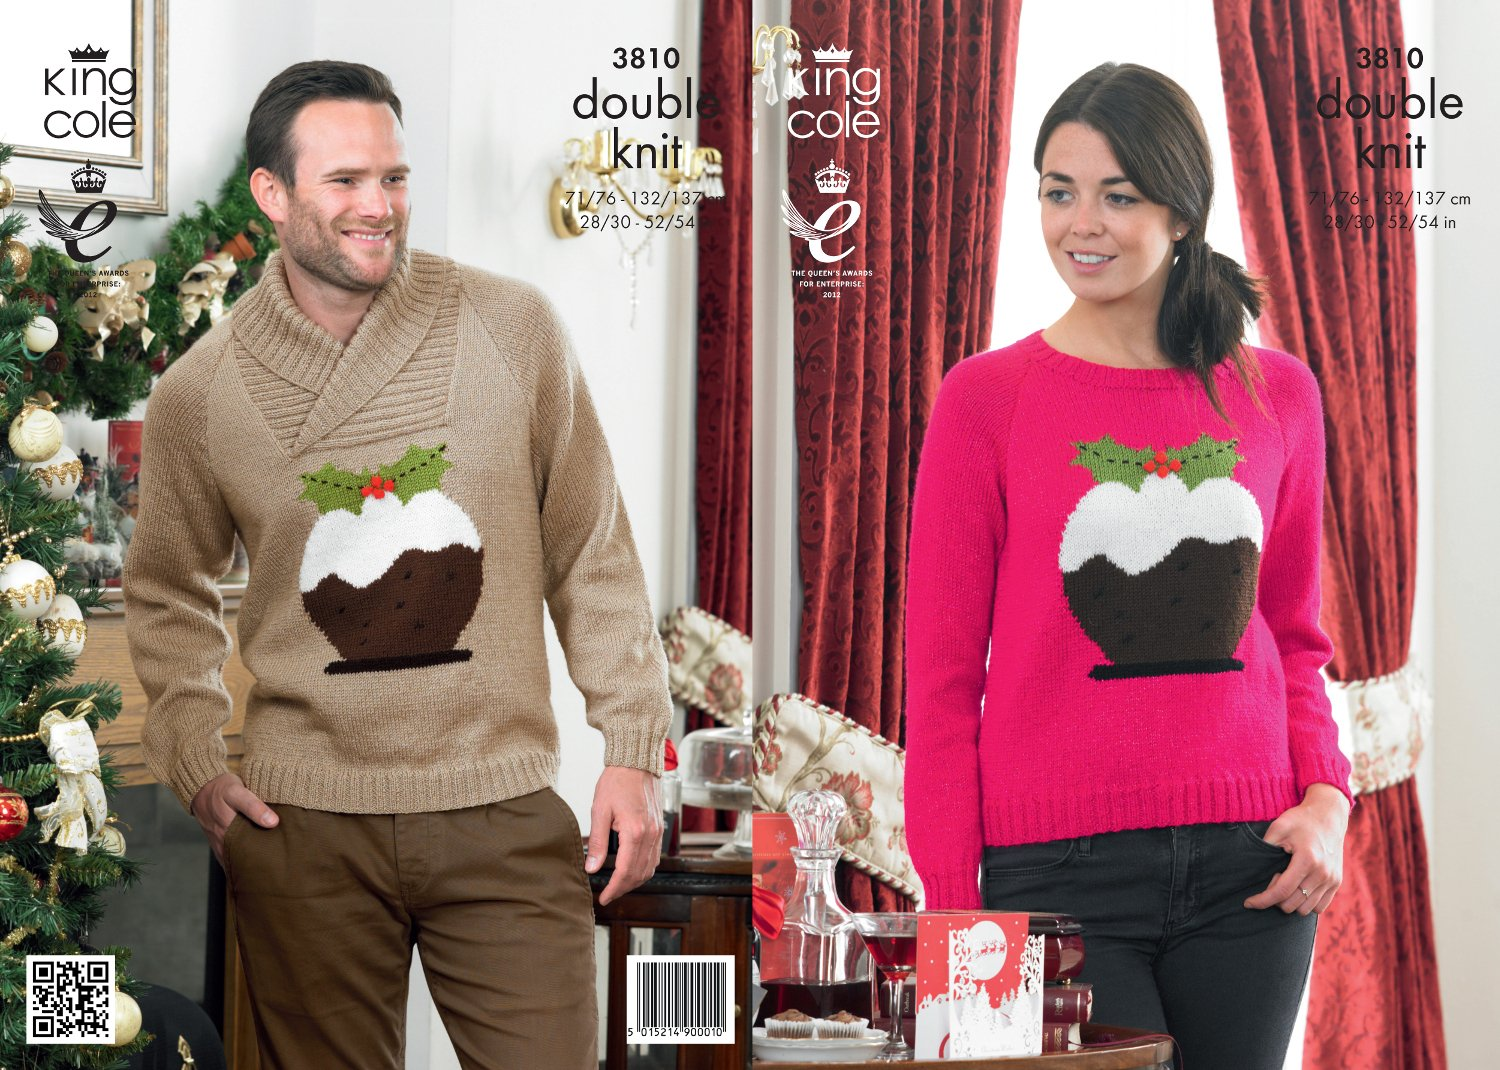 King Cole Penguin Knitting Pattern : Christmas Jumper Knitting Patterns - Sniff It Out!